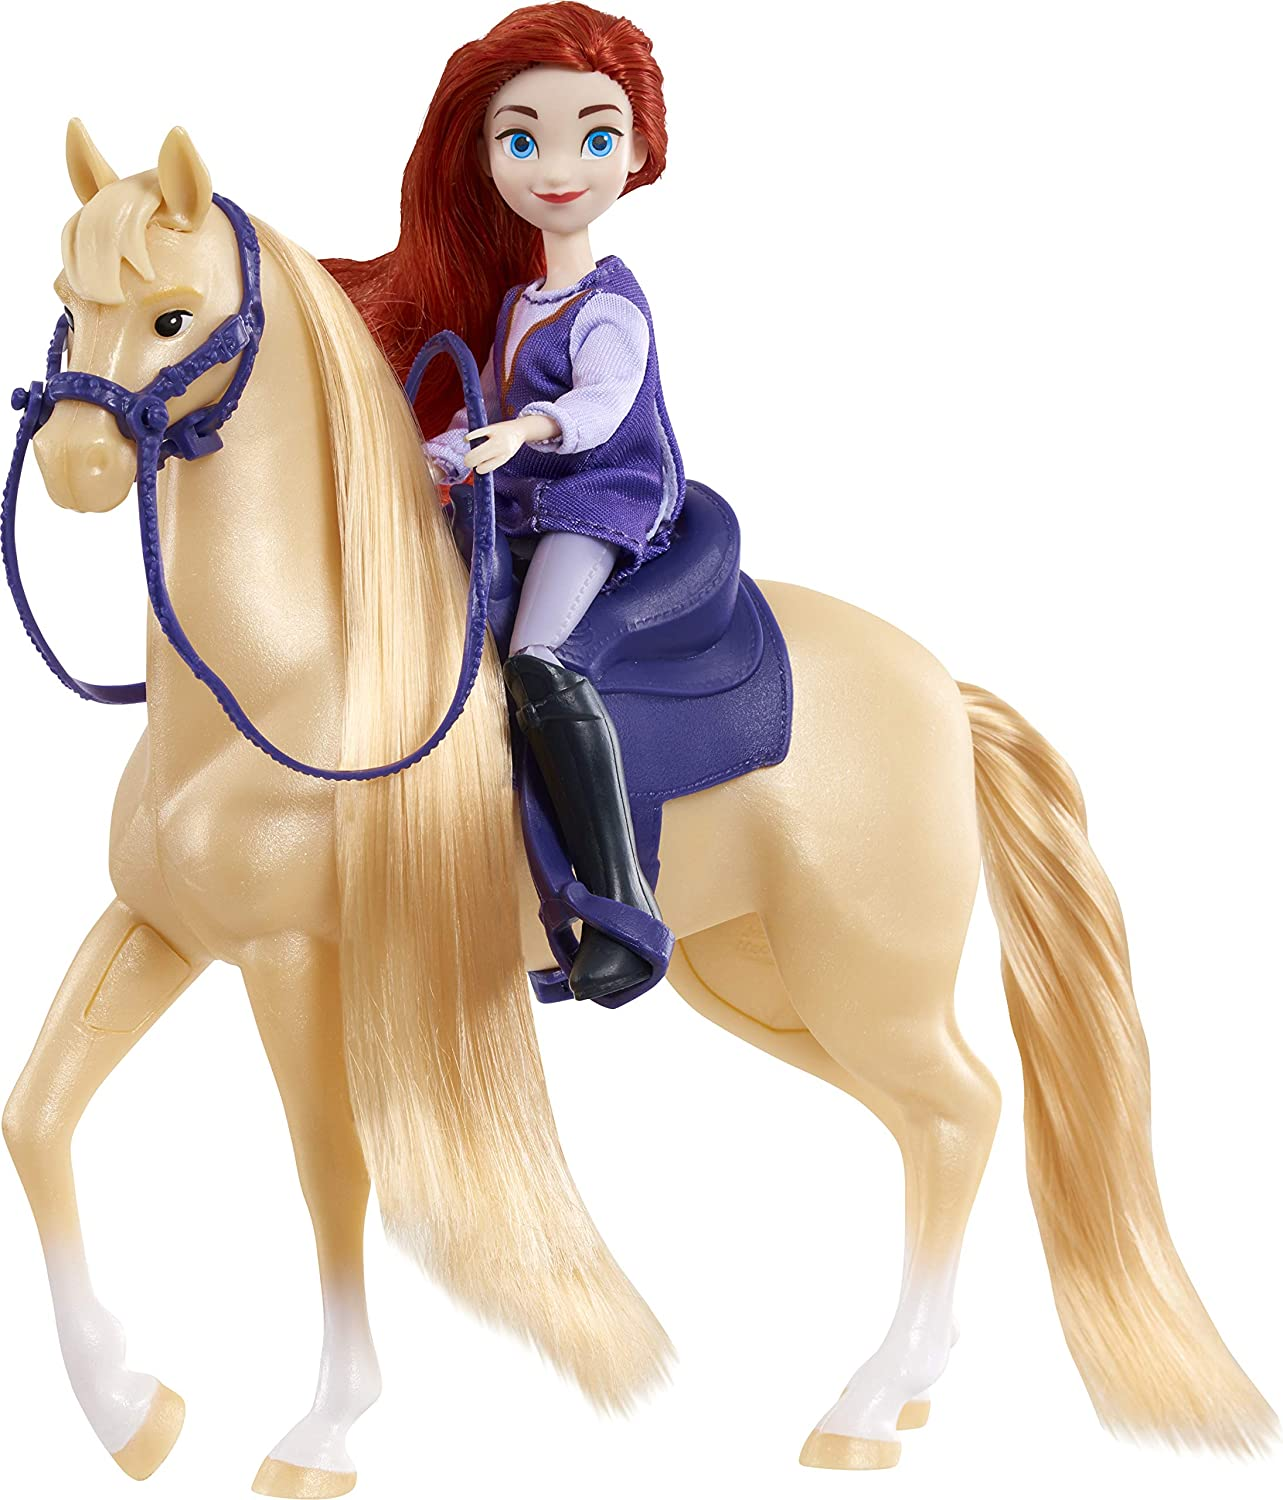 Dreamworks Spirit Collector Series Small Horse Figure CHOICE OF CHARACTER